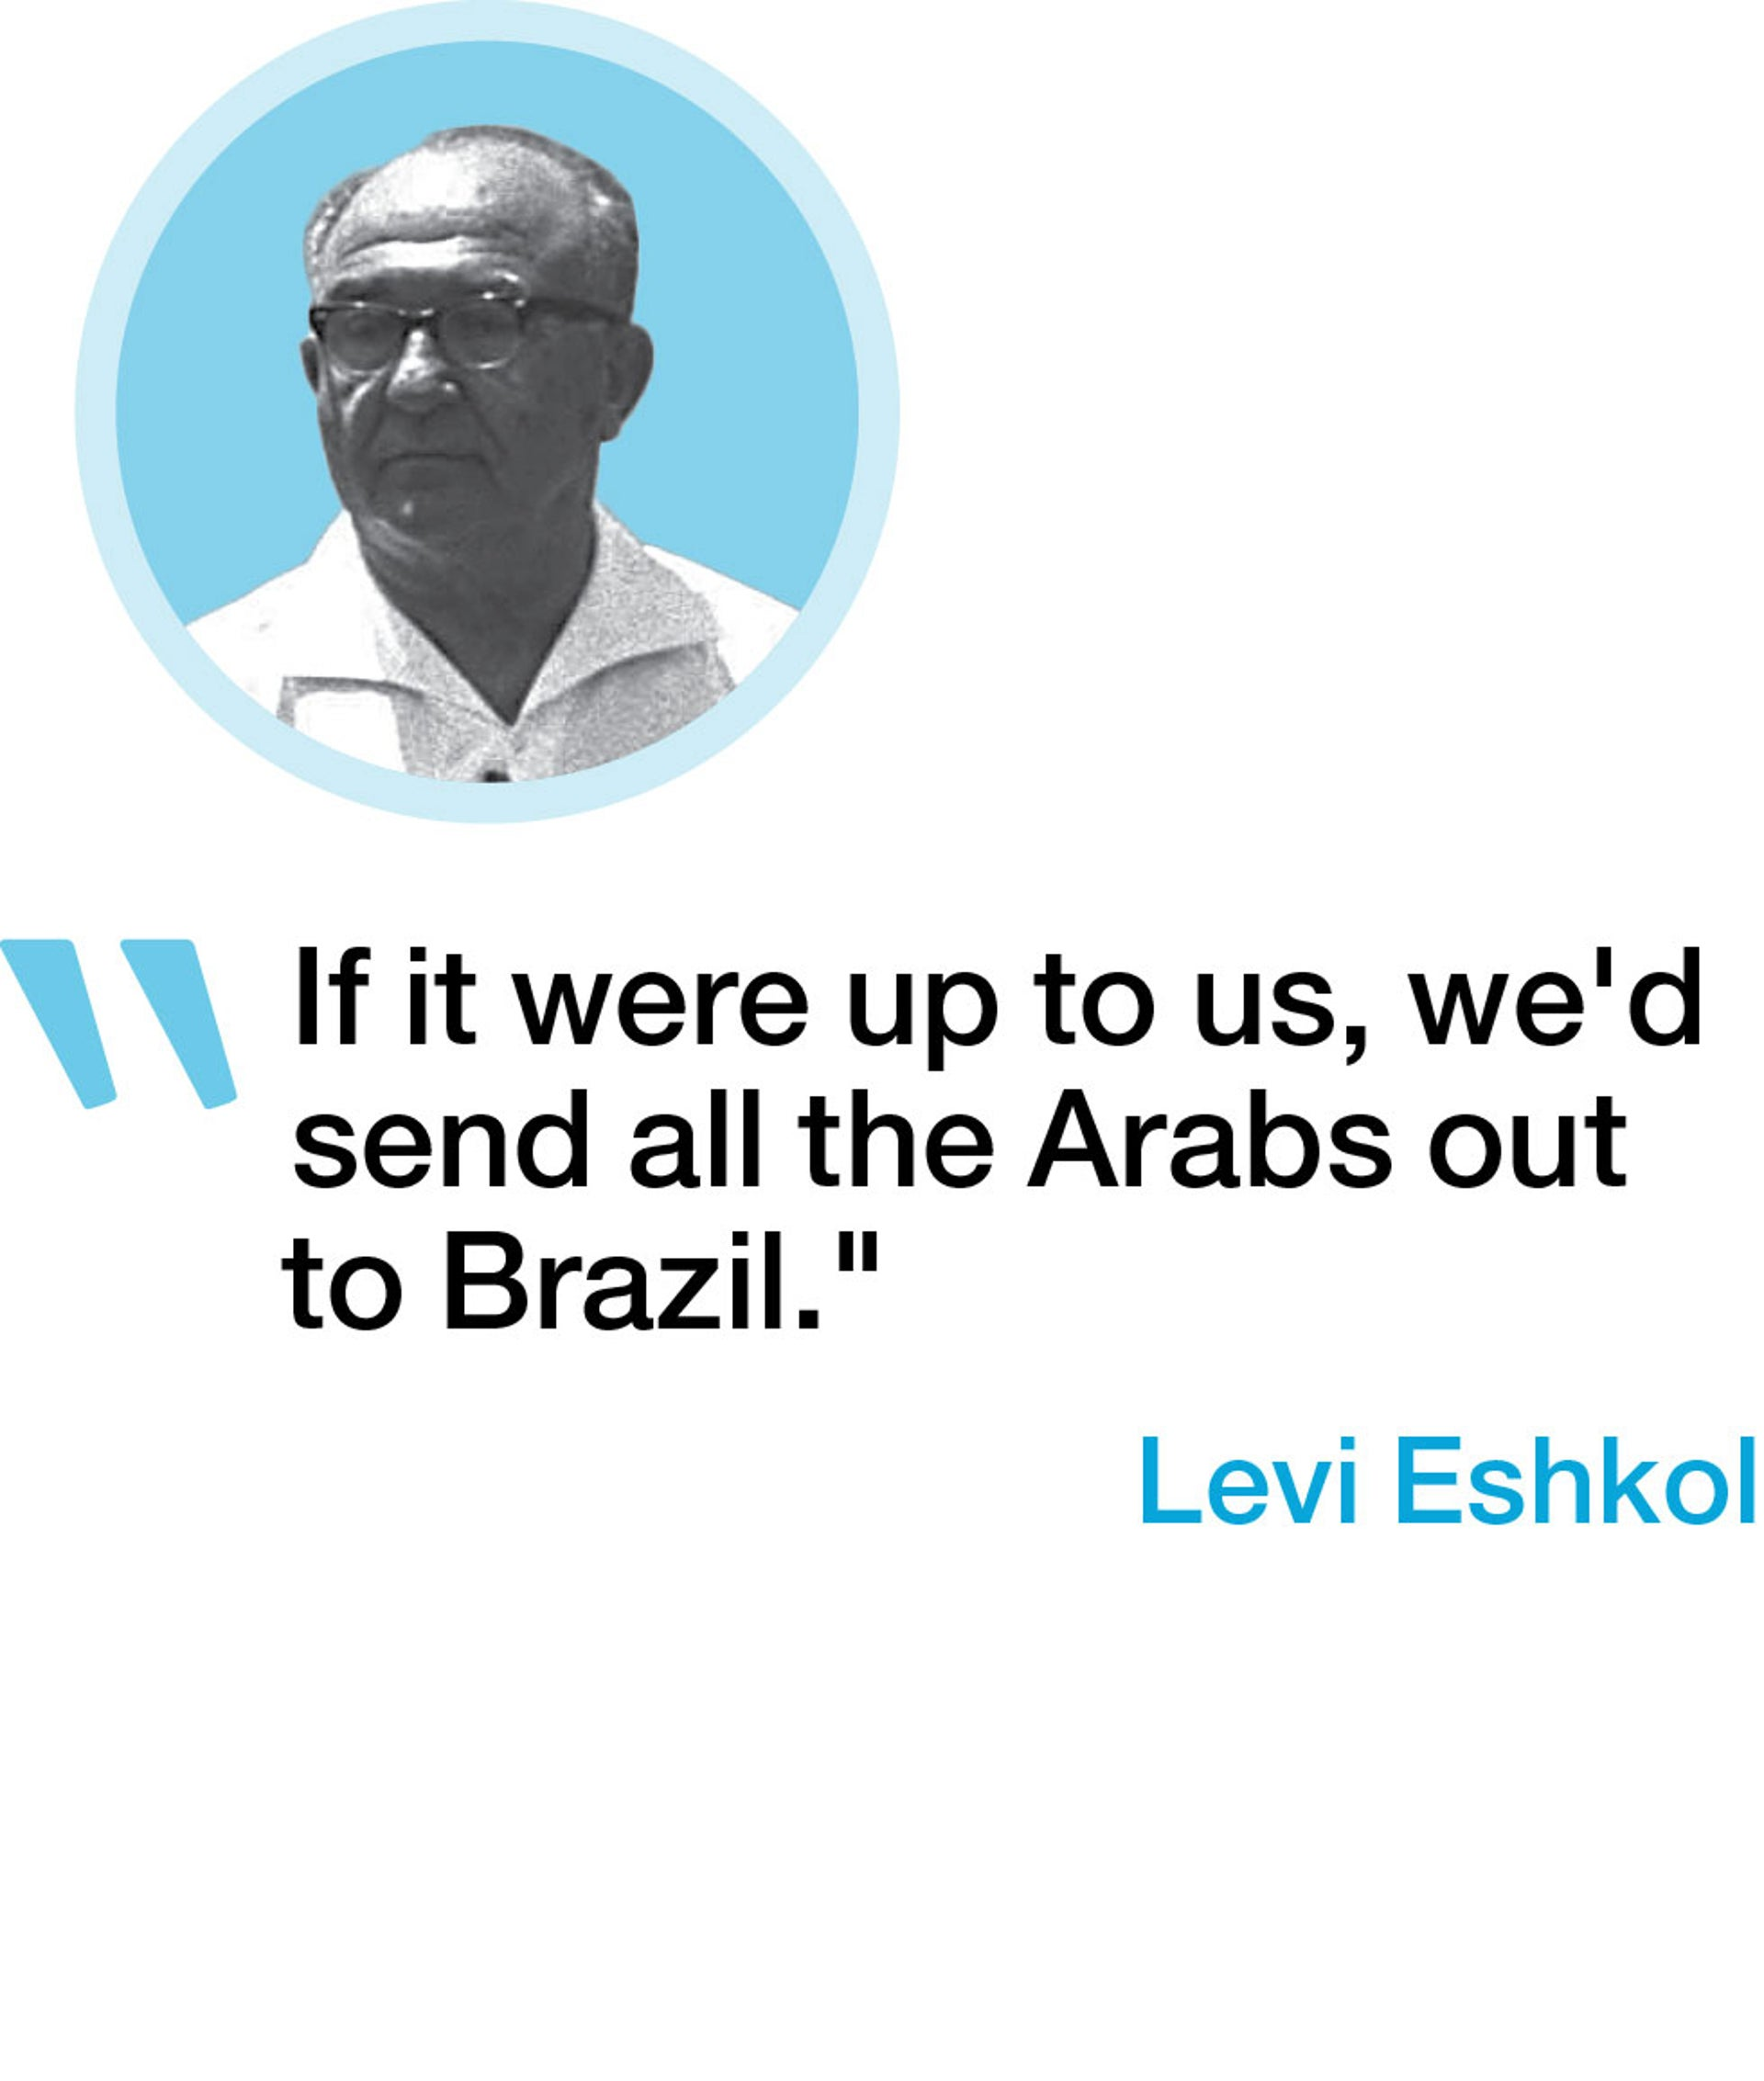 """If it were up to us, we'd send all the Arabs out to Brazil."" - Levi Eshkol"